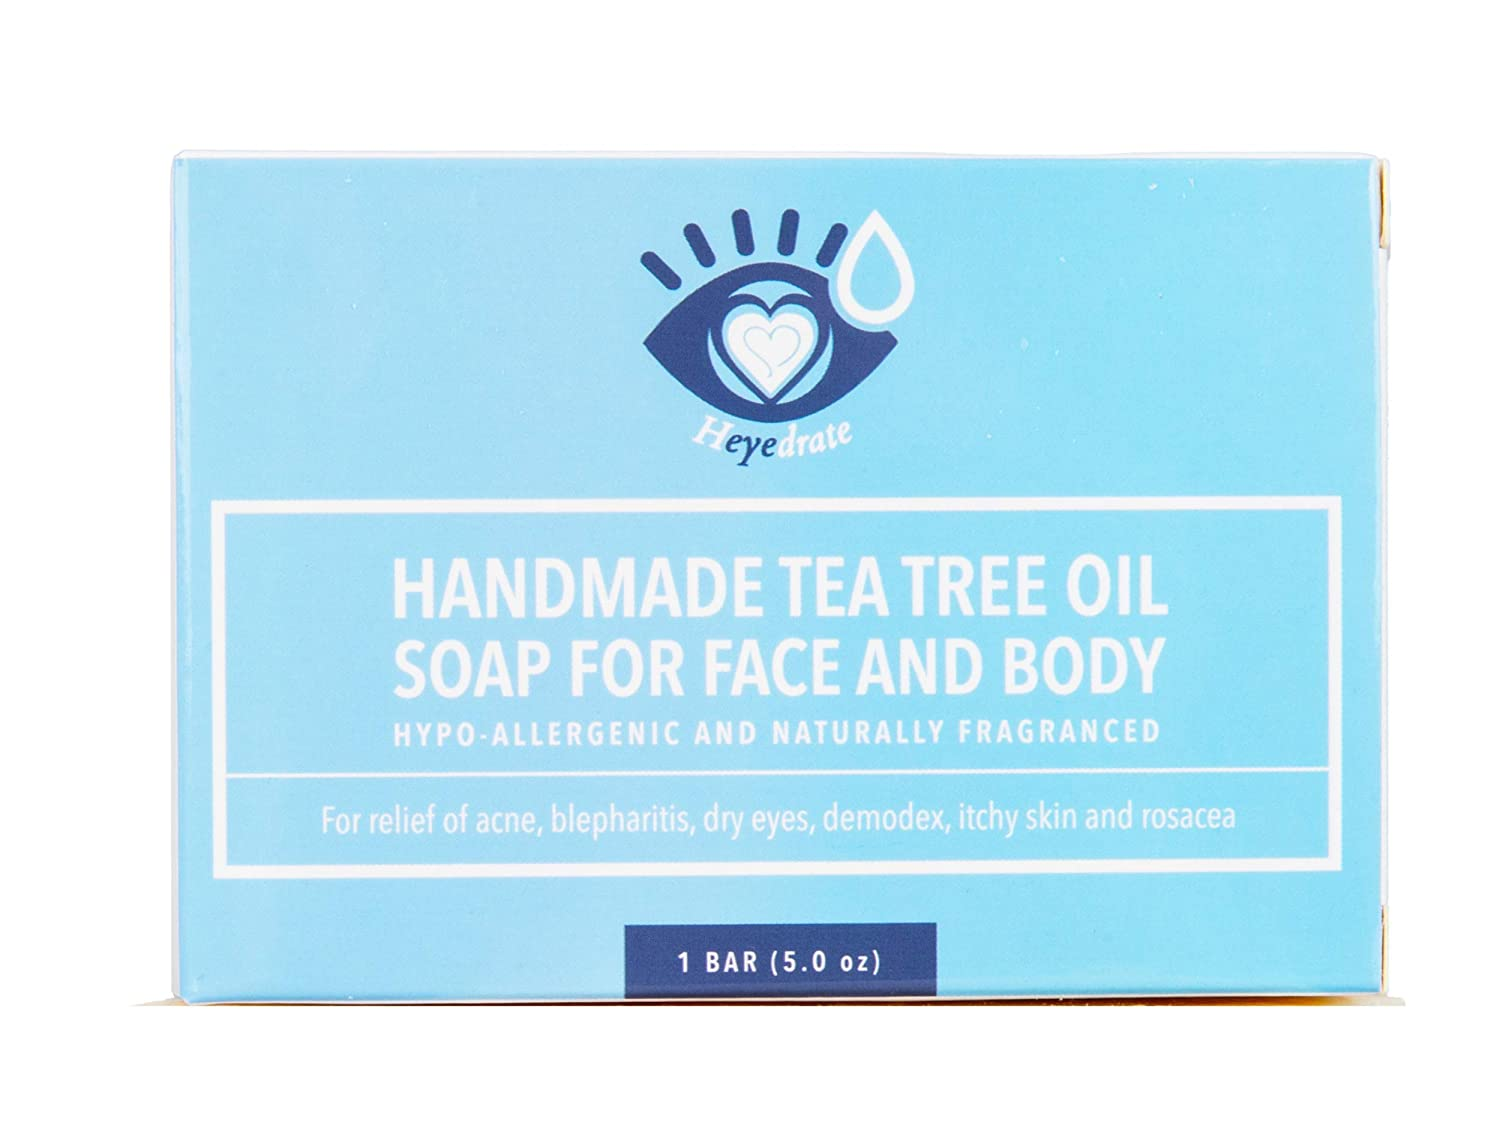 Tea Tree Oil Face Soap and Eyelid Scrub for Support of Eyelid Irritation, Itchy Skin, Flaky Skin, and Dryness, Handmade with Organic Ingredients (1 Pack) [Packaging May Vary]: Health & Personal Care